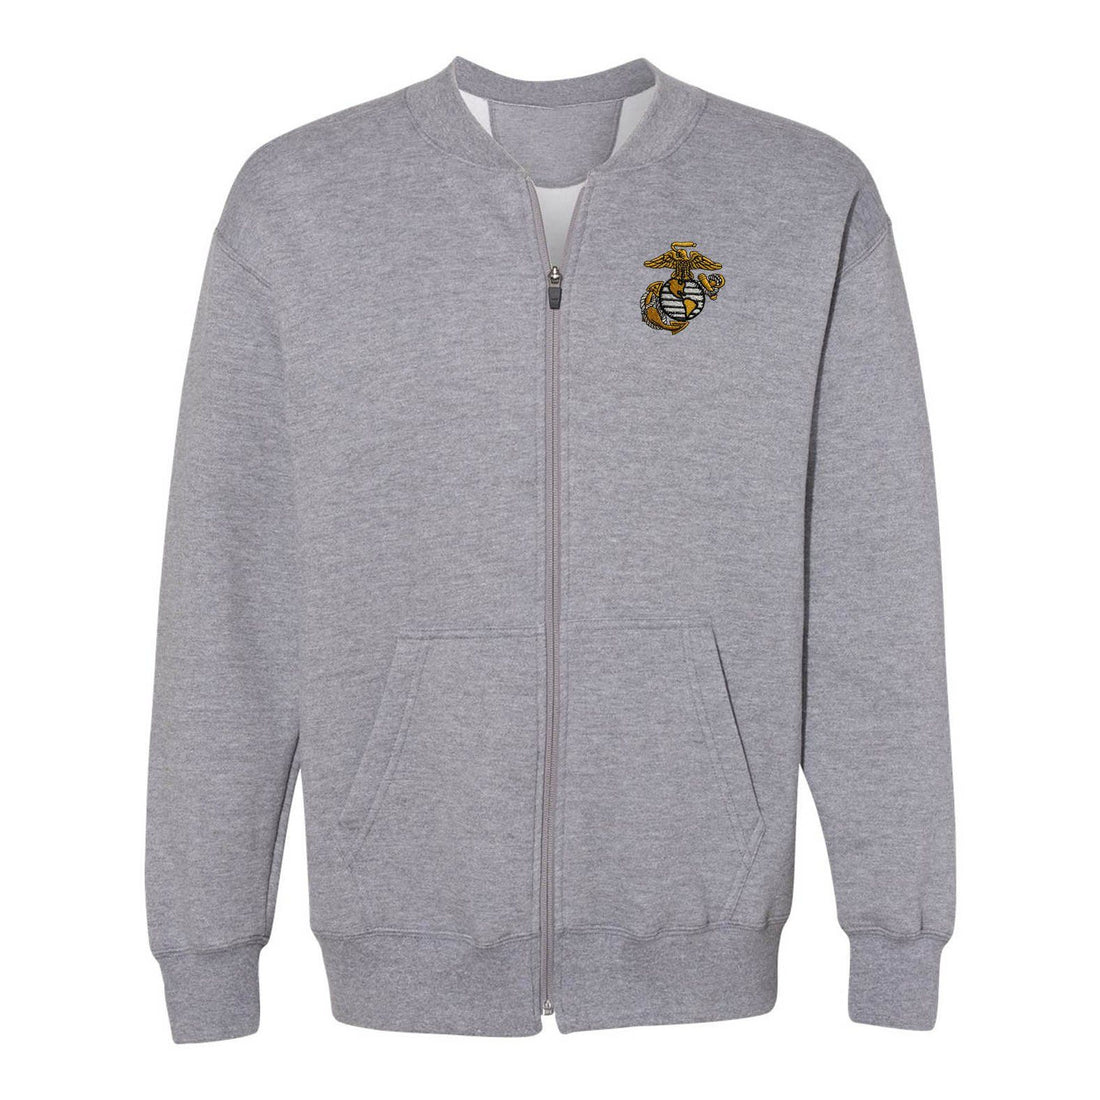 EGA Fleece Full-Zip Cadet Collar Embroidered Sweatshirt - Marine Corps Direct